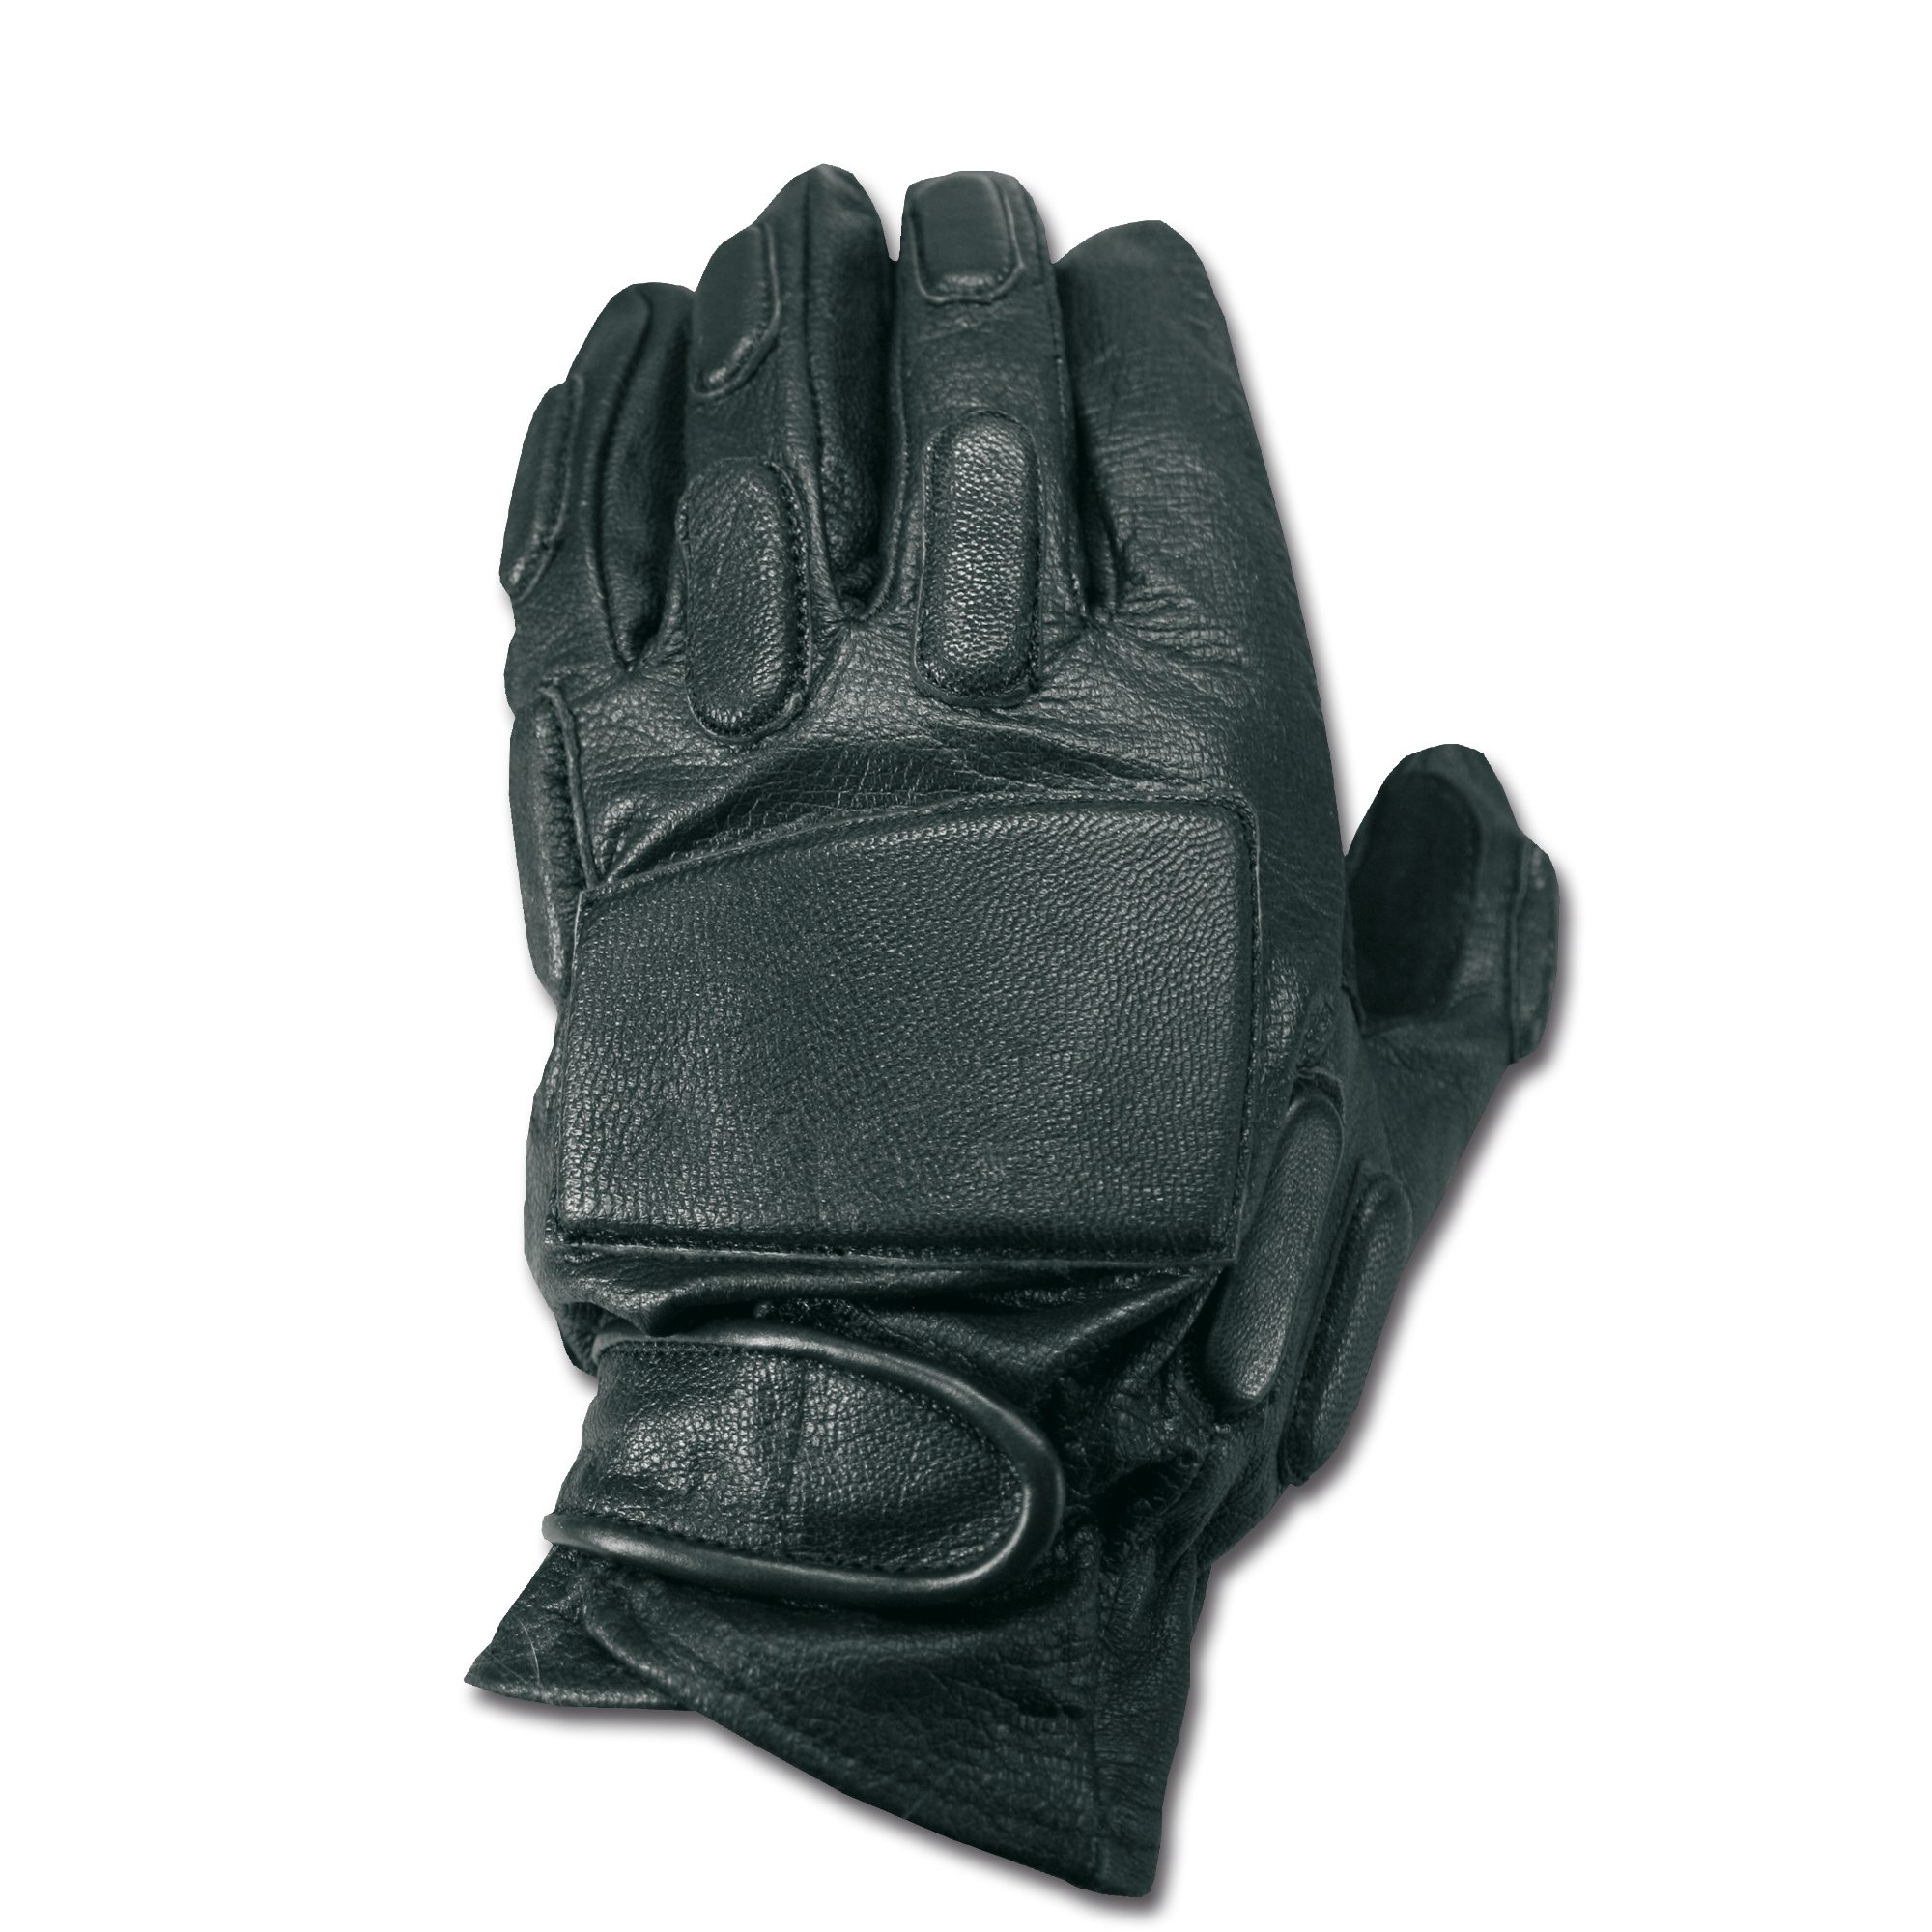 SWAT Full Finger Gloves